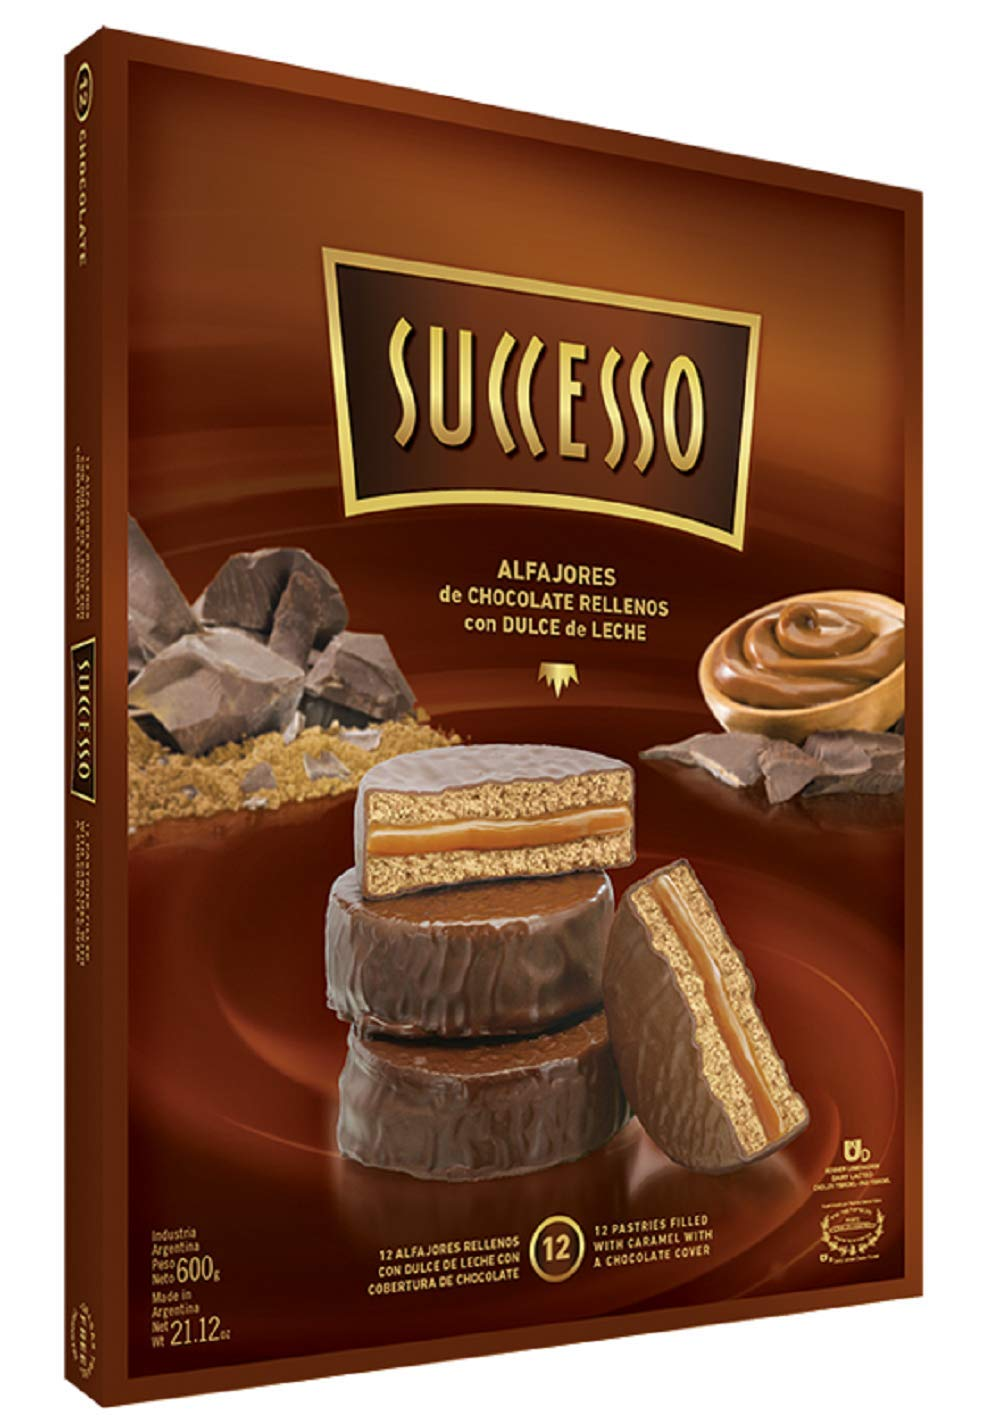 Argentina Alfajores Successo, Chocolate Coated Cookies and Filled with Argentinian Dulce de Leche, Typical Argentina Food, Argentina Candy Great for Gift, (Box of 12 Units, Milk Chocolate Coat)